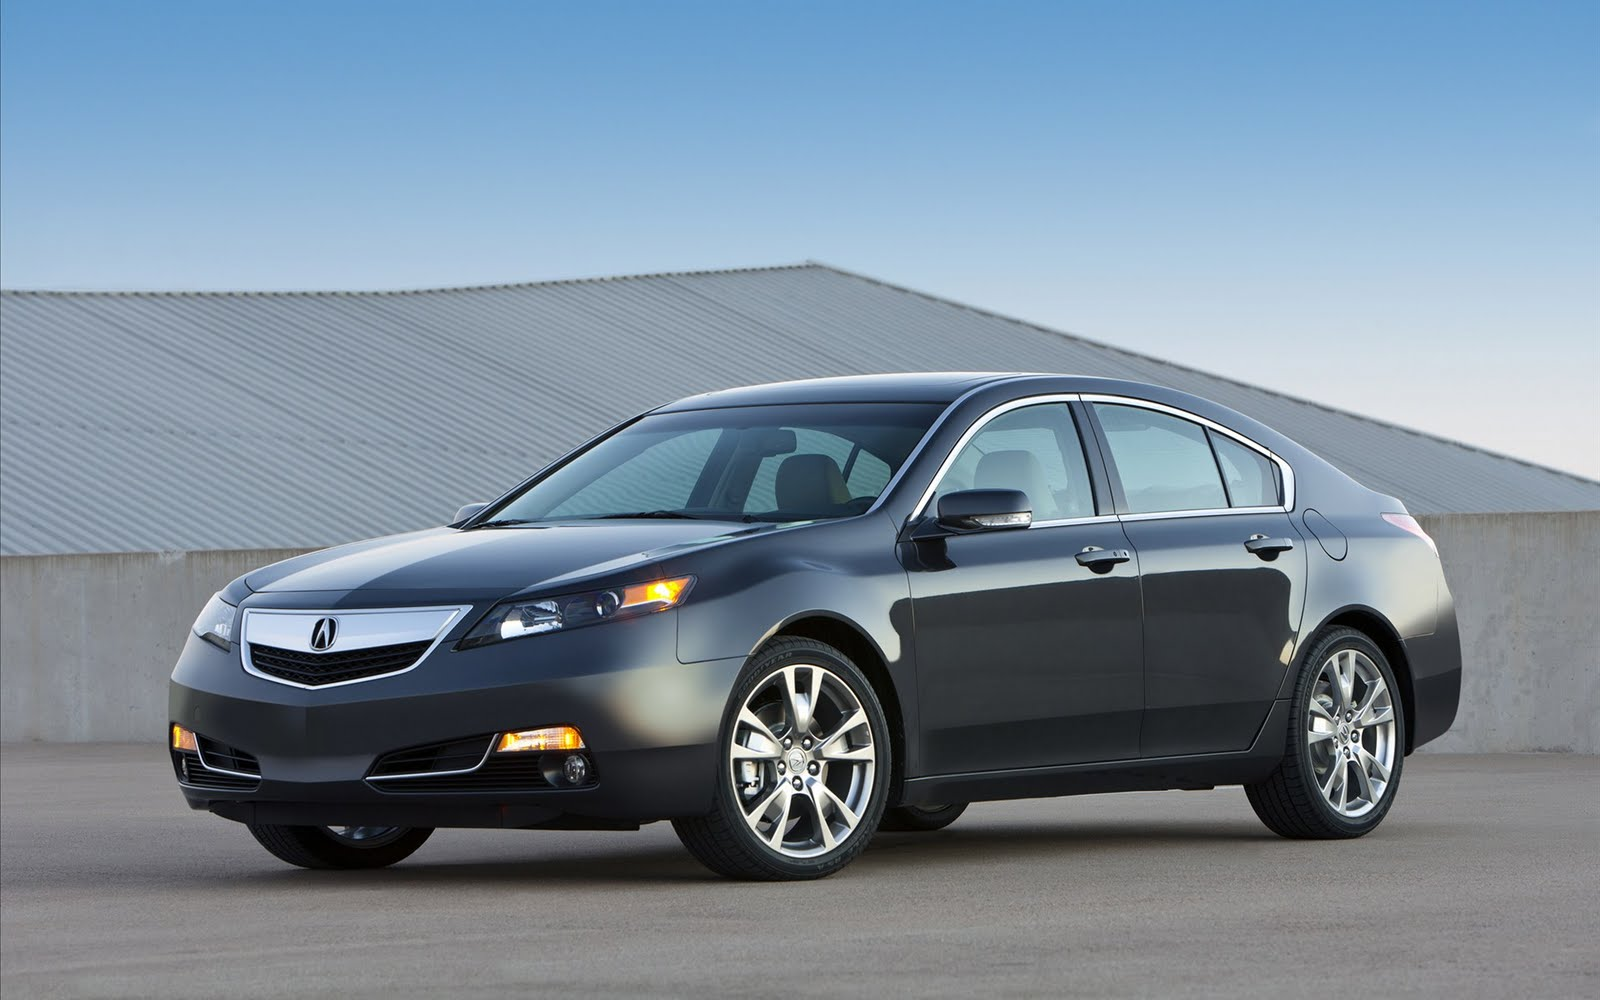 autoweek sh acura rear advance notes article awd reviews review tl sale car for